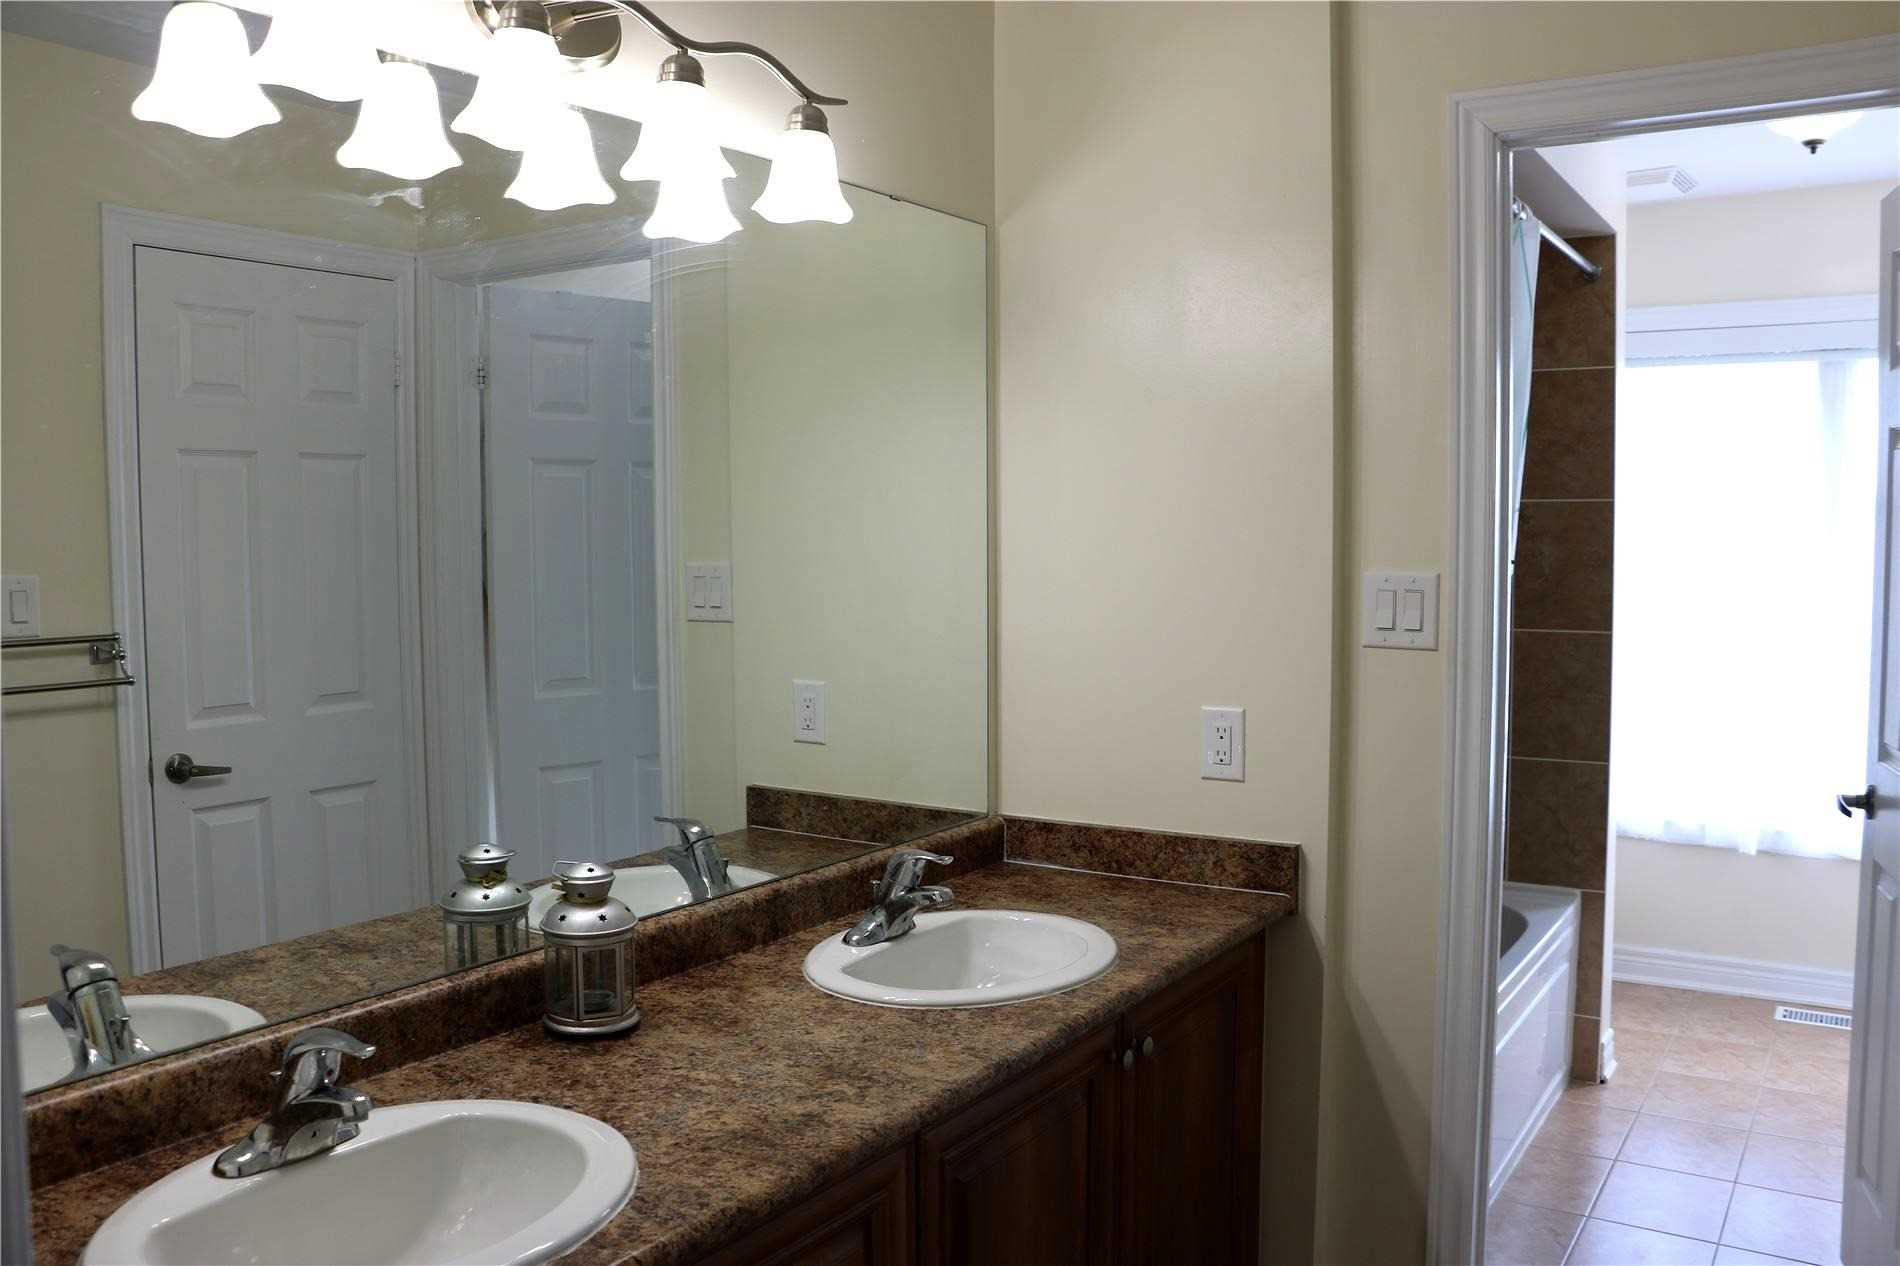 Detached house For Lease In Richmond Hill - 34 Carat Cres, Richmond Hill, Ontario, Canada L4S0B3 , 4 Bedrooms Bedrooms, ,5 BathroomsBathrooms,Detached,For Lease,Carat